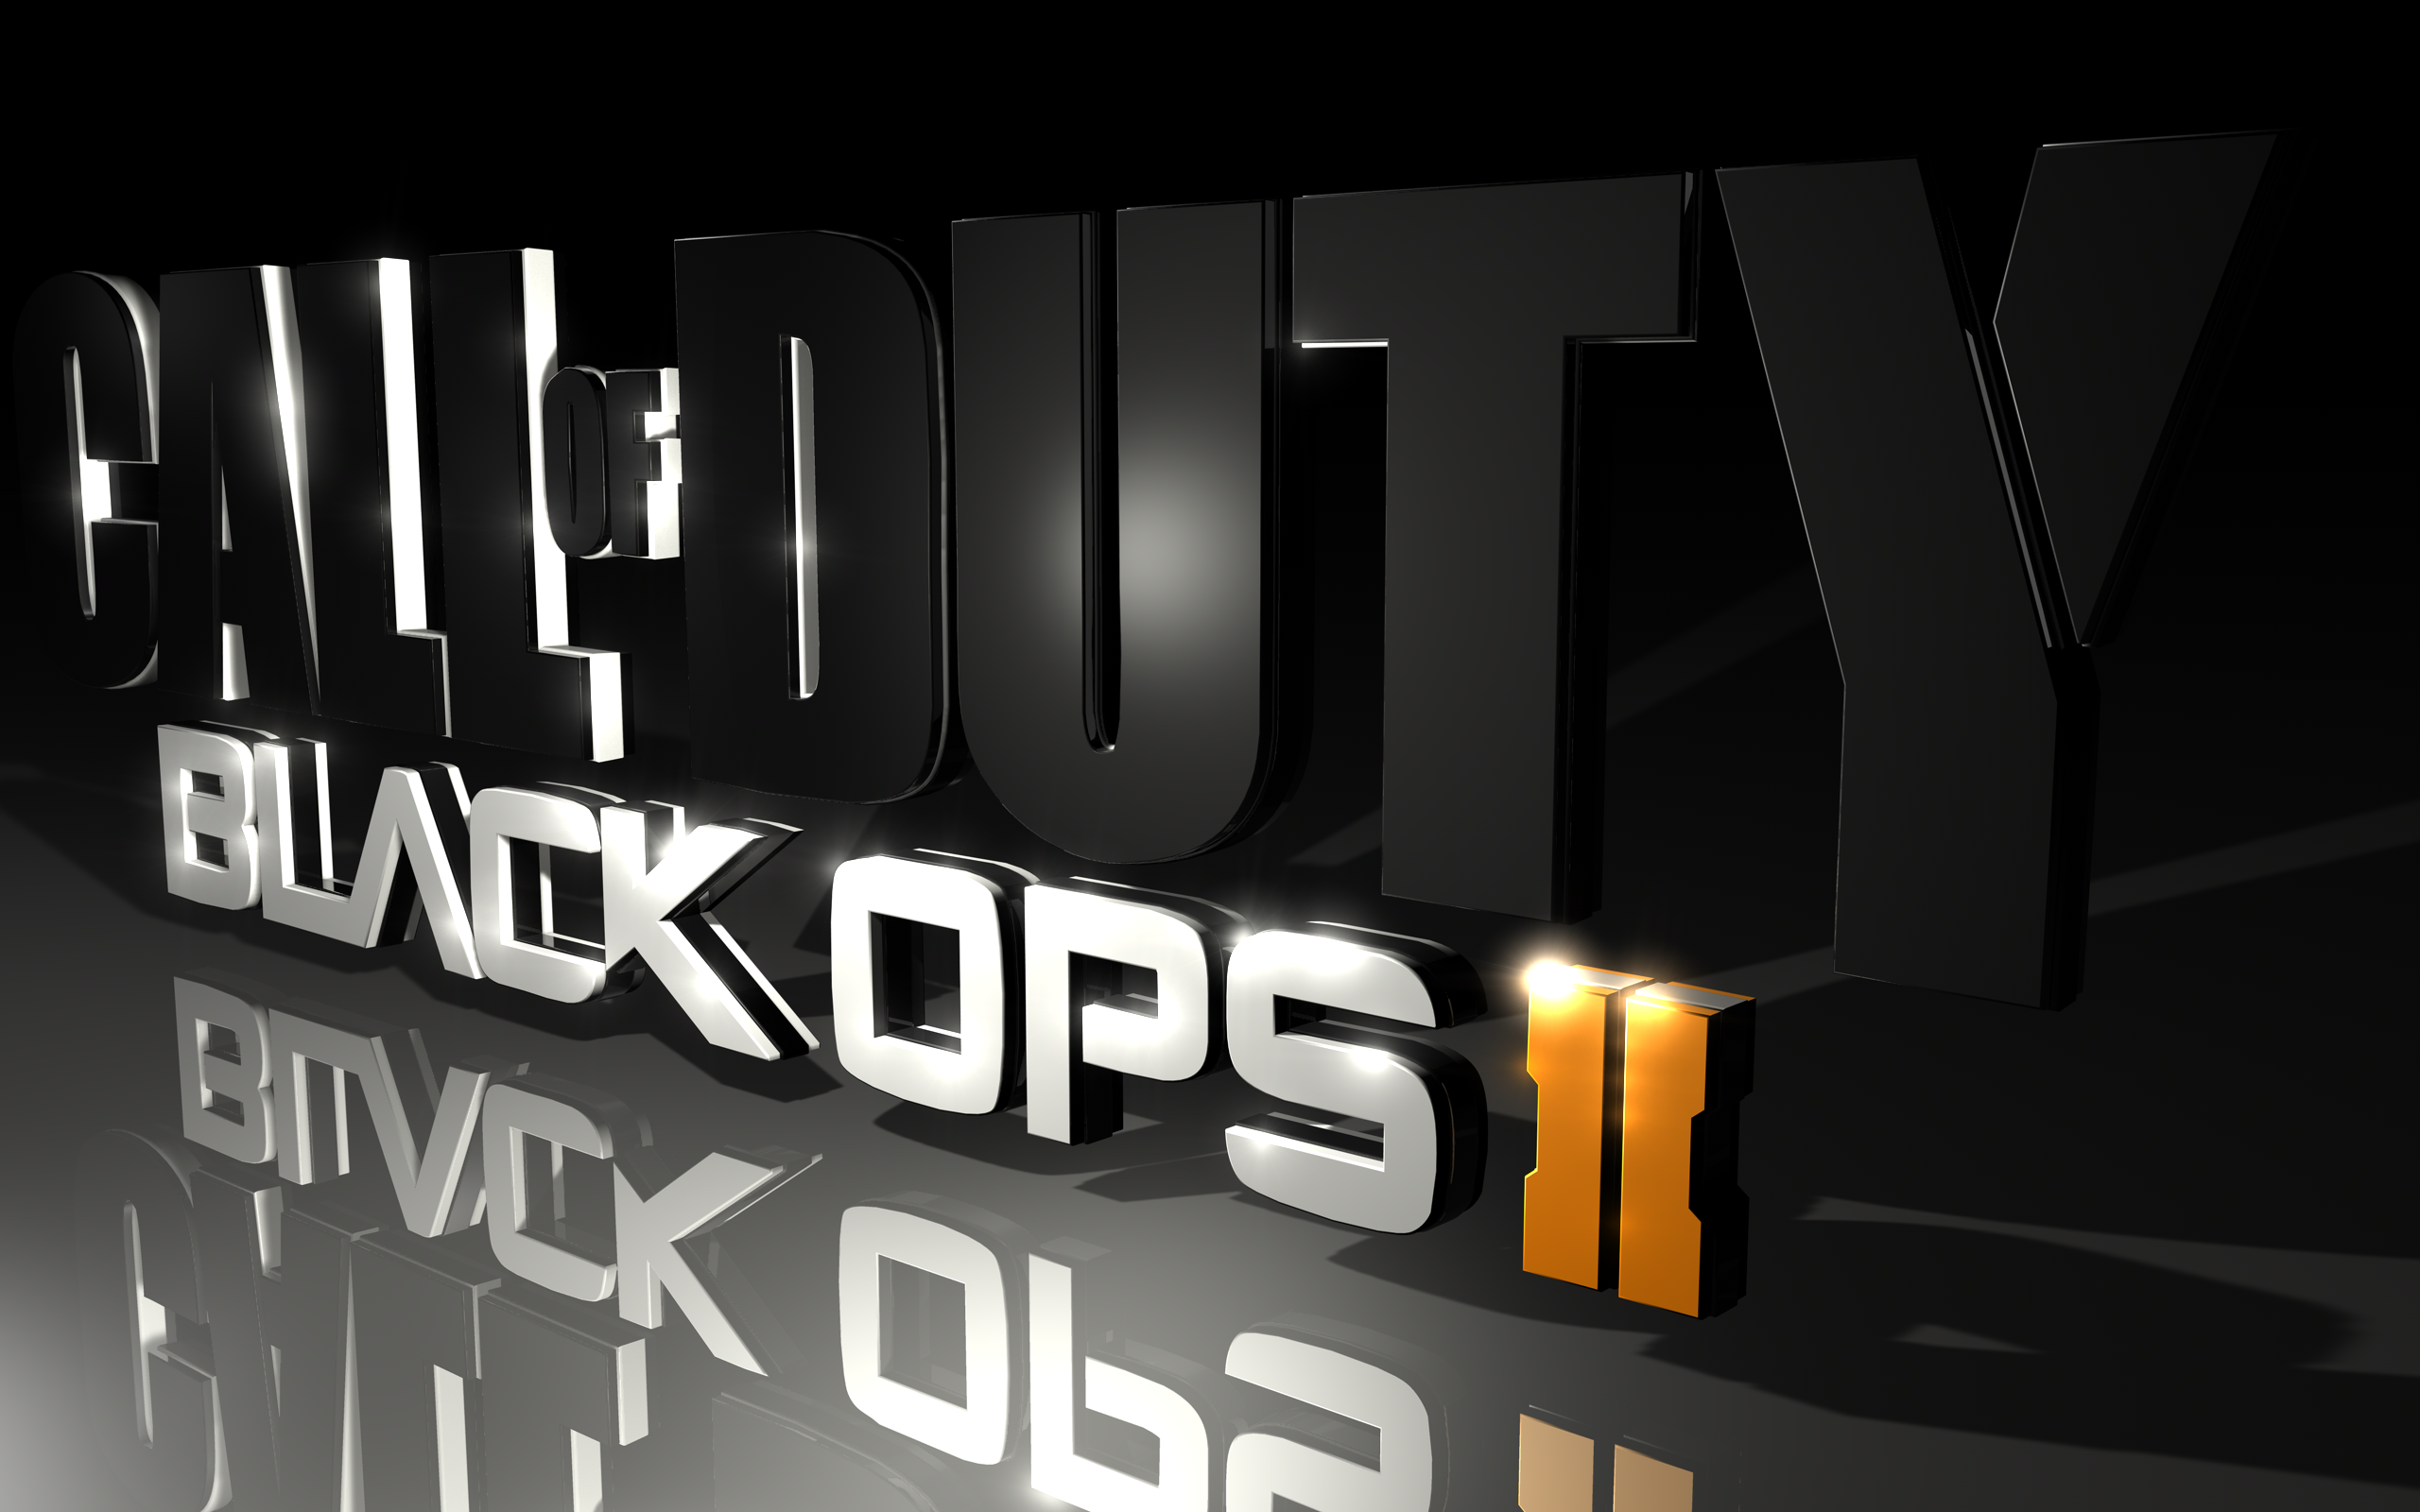 Black Ops 2 Wallpaper 7 Images Crazy Gallery 2560x1600